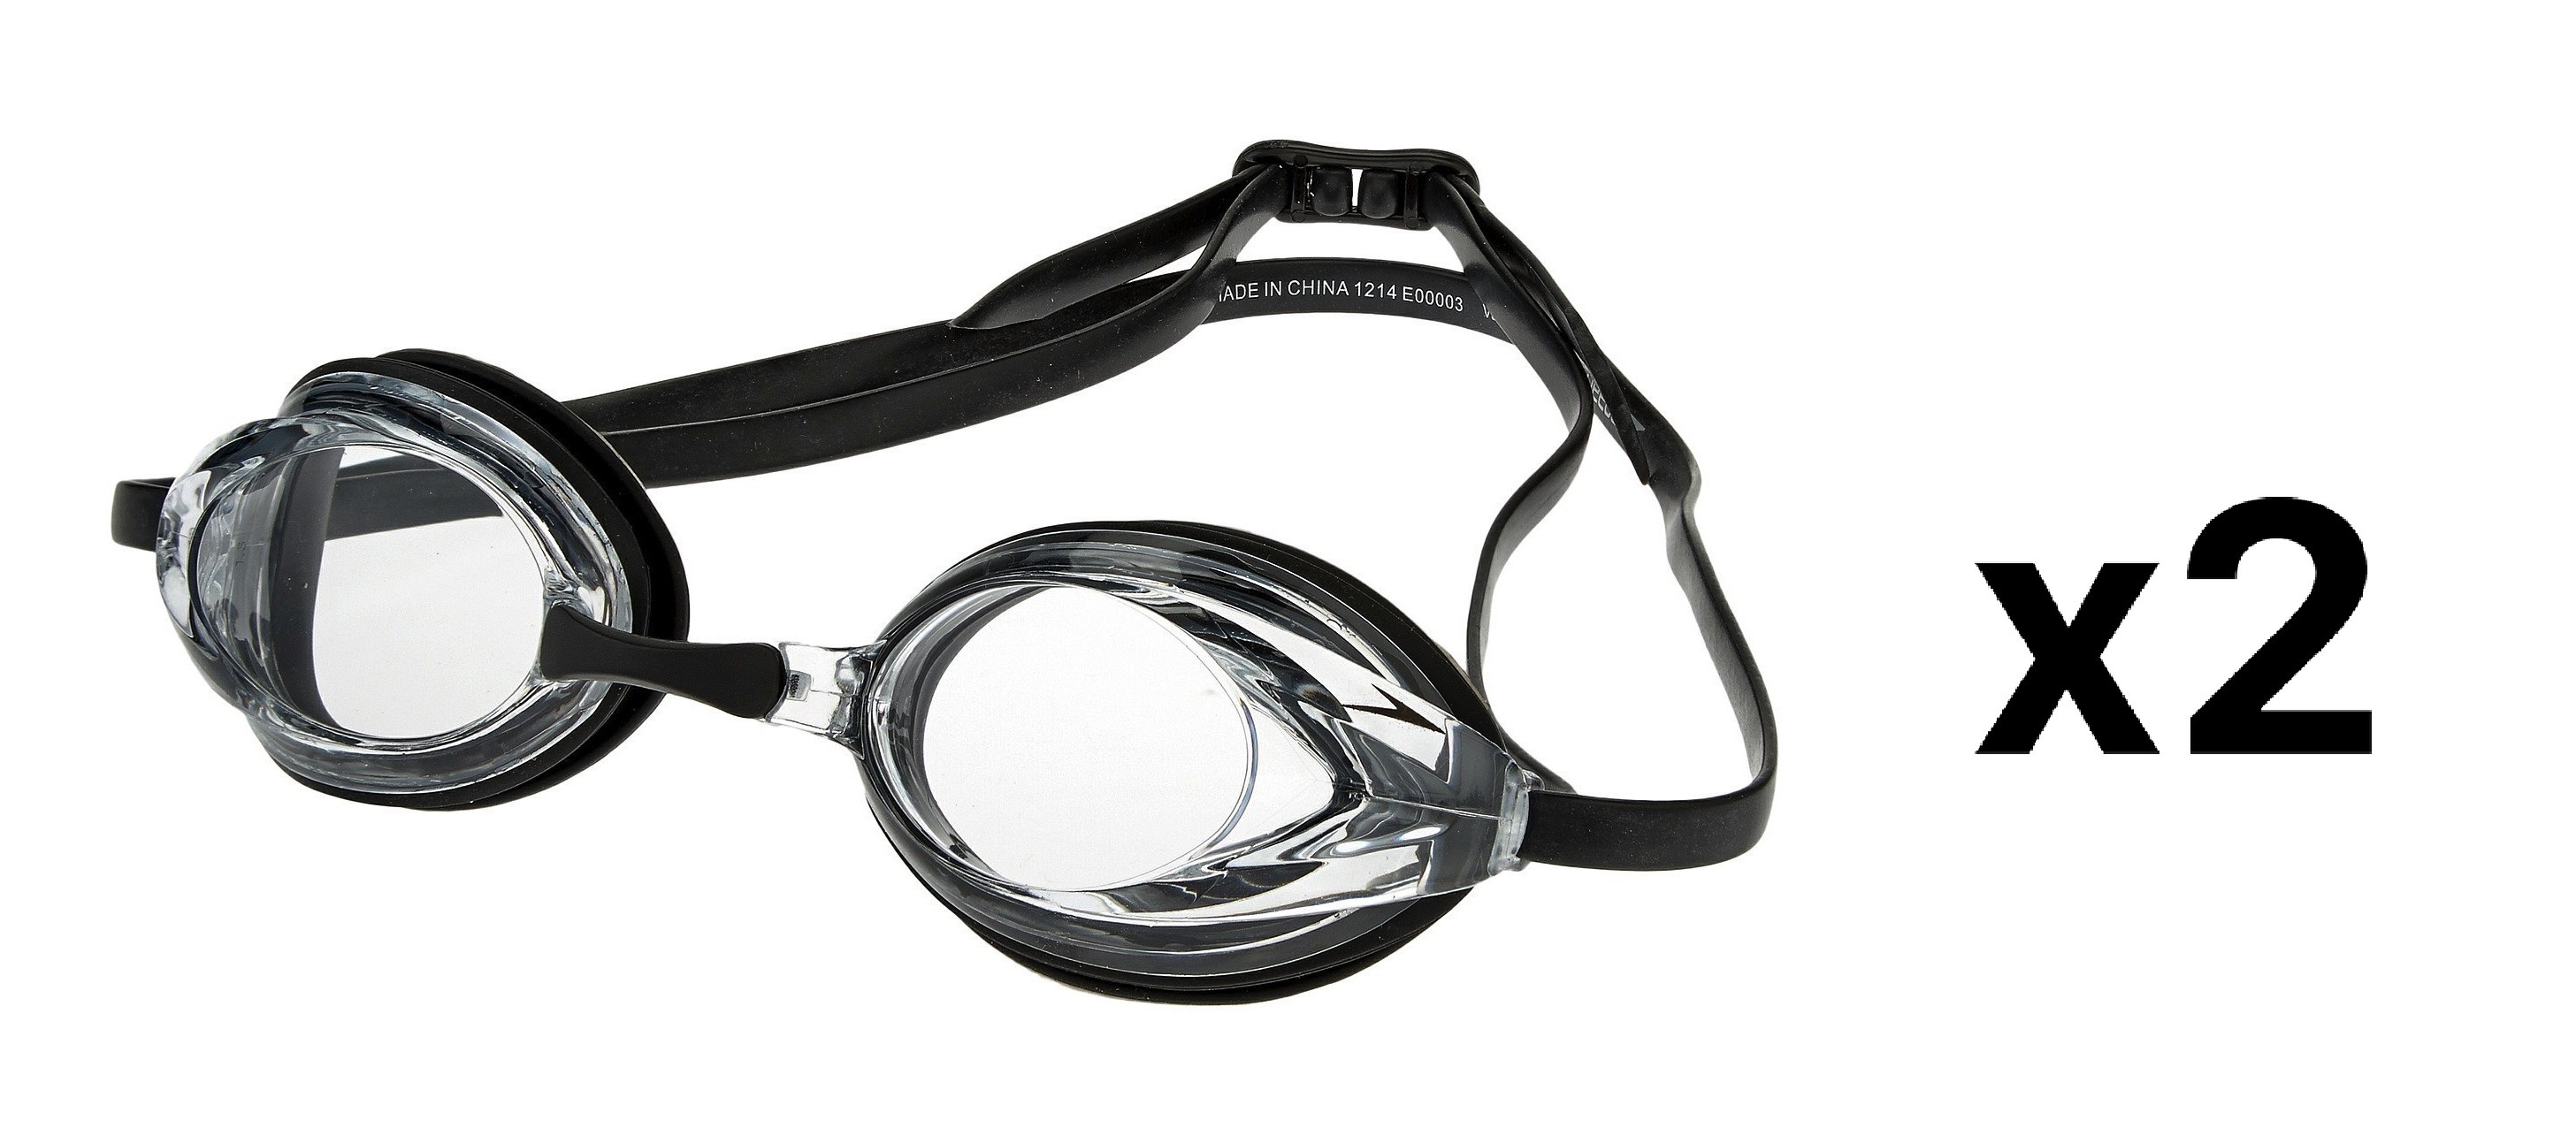 8ac208baf243 Speedo Vanquisher Optical Swim Swimming Goggles Clear Diopter -5.0 ...